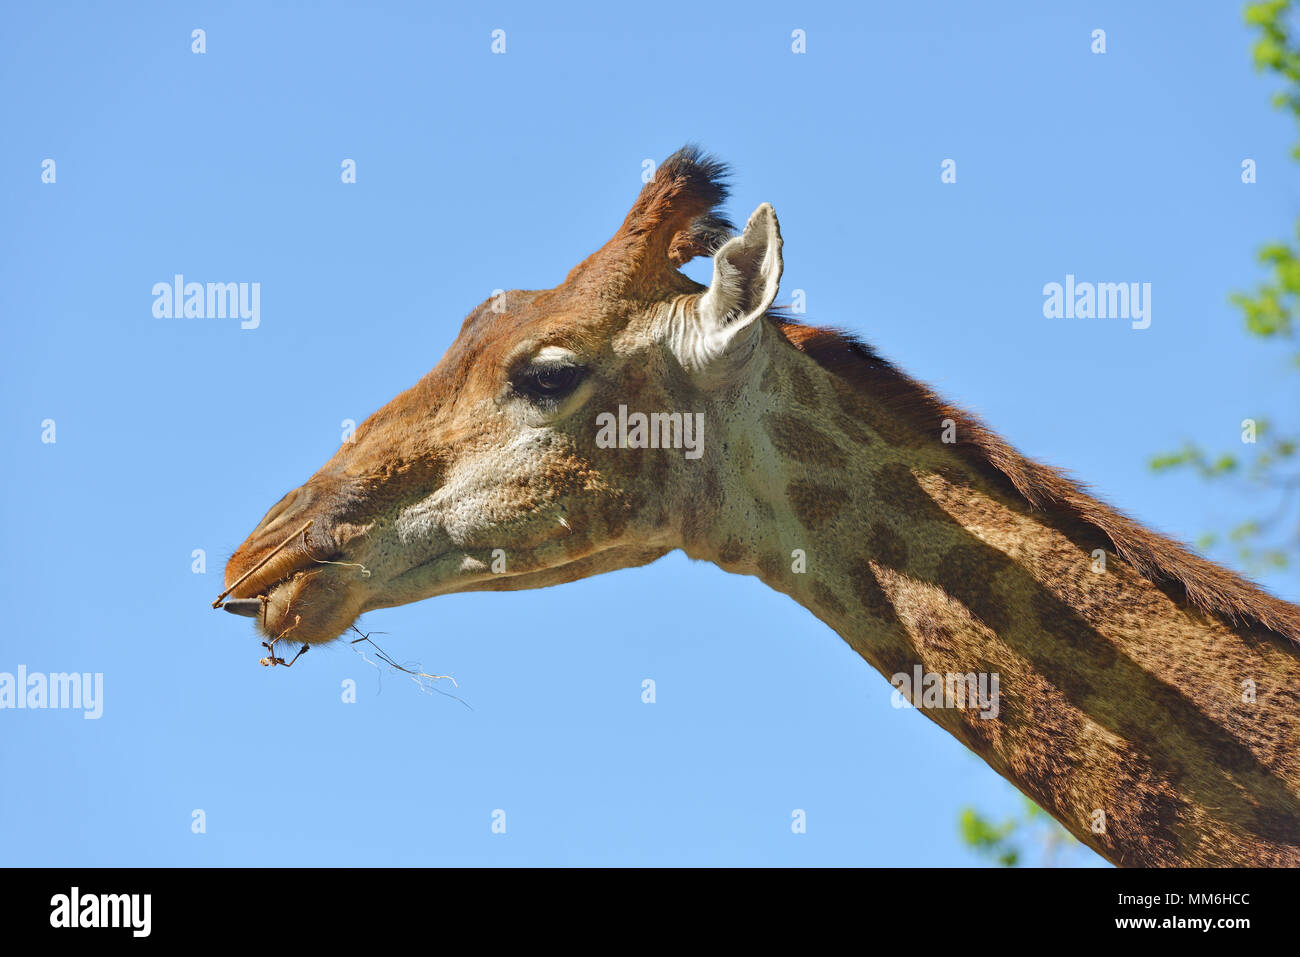 Giraffe (Giraffa camelopardalis giraffa). Beautiful portrait against blue sky - Stock Image